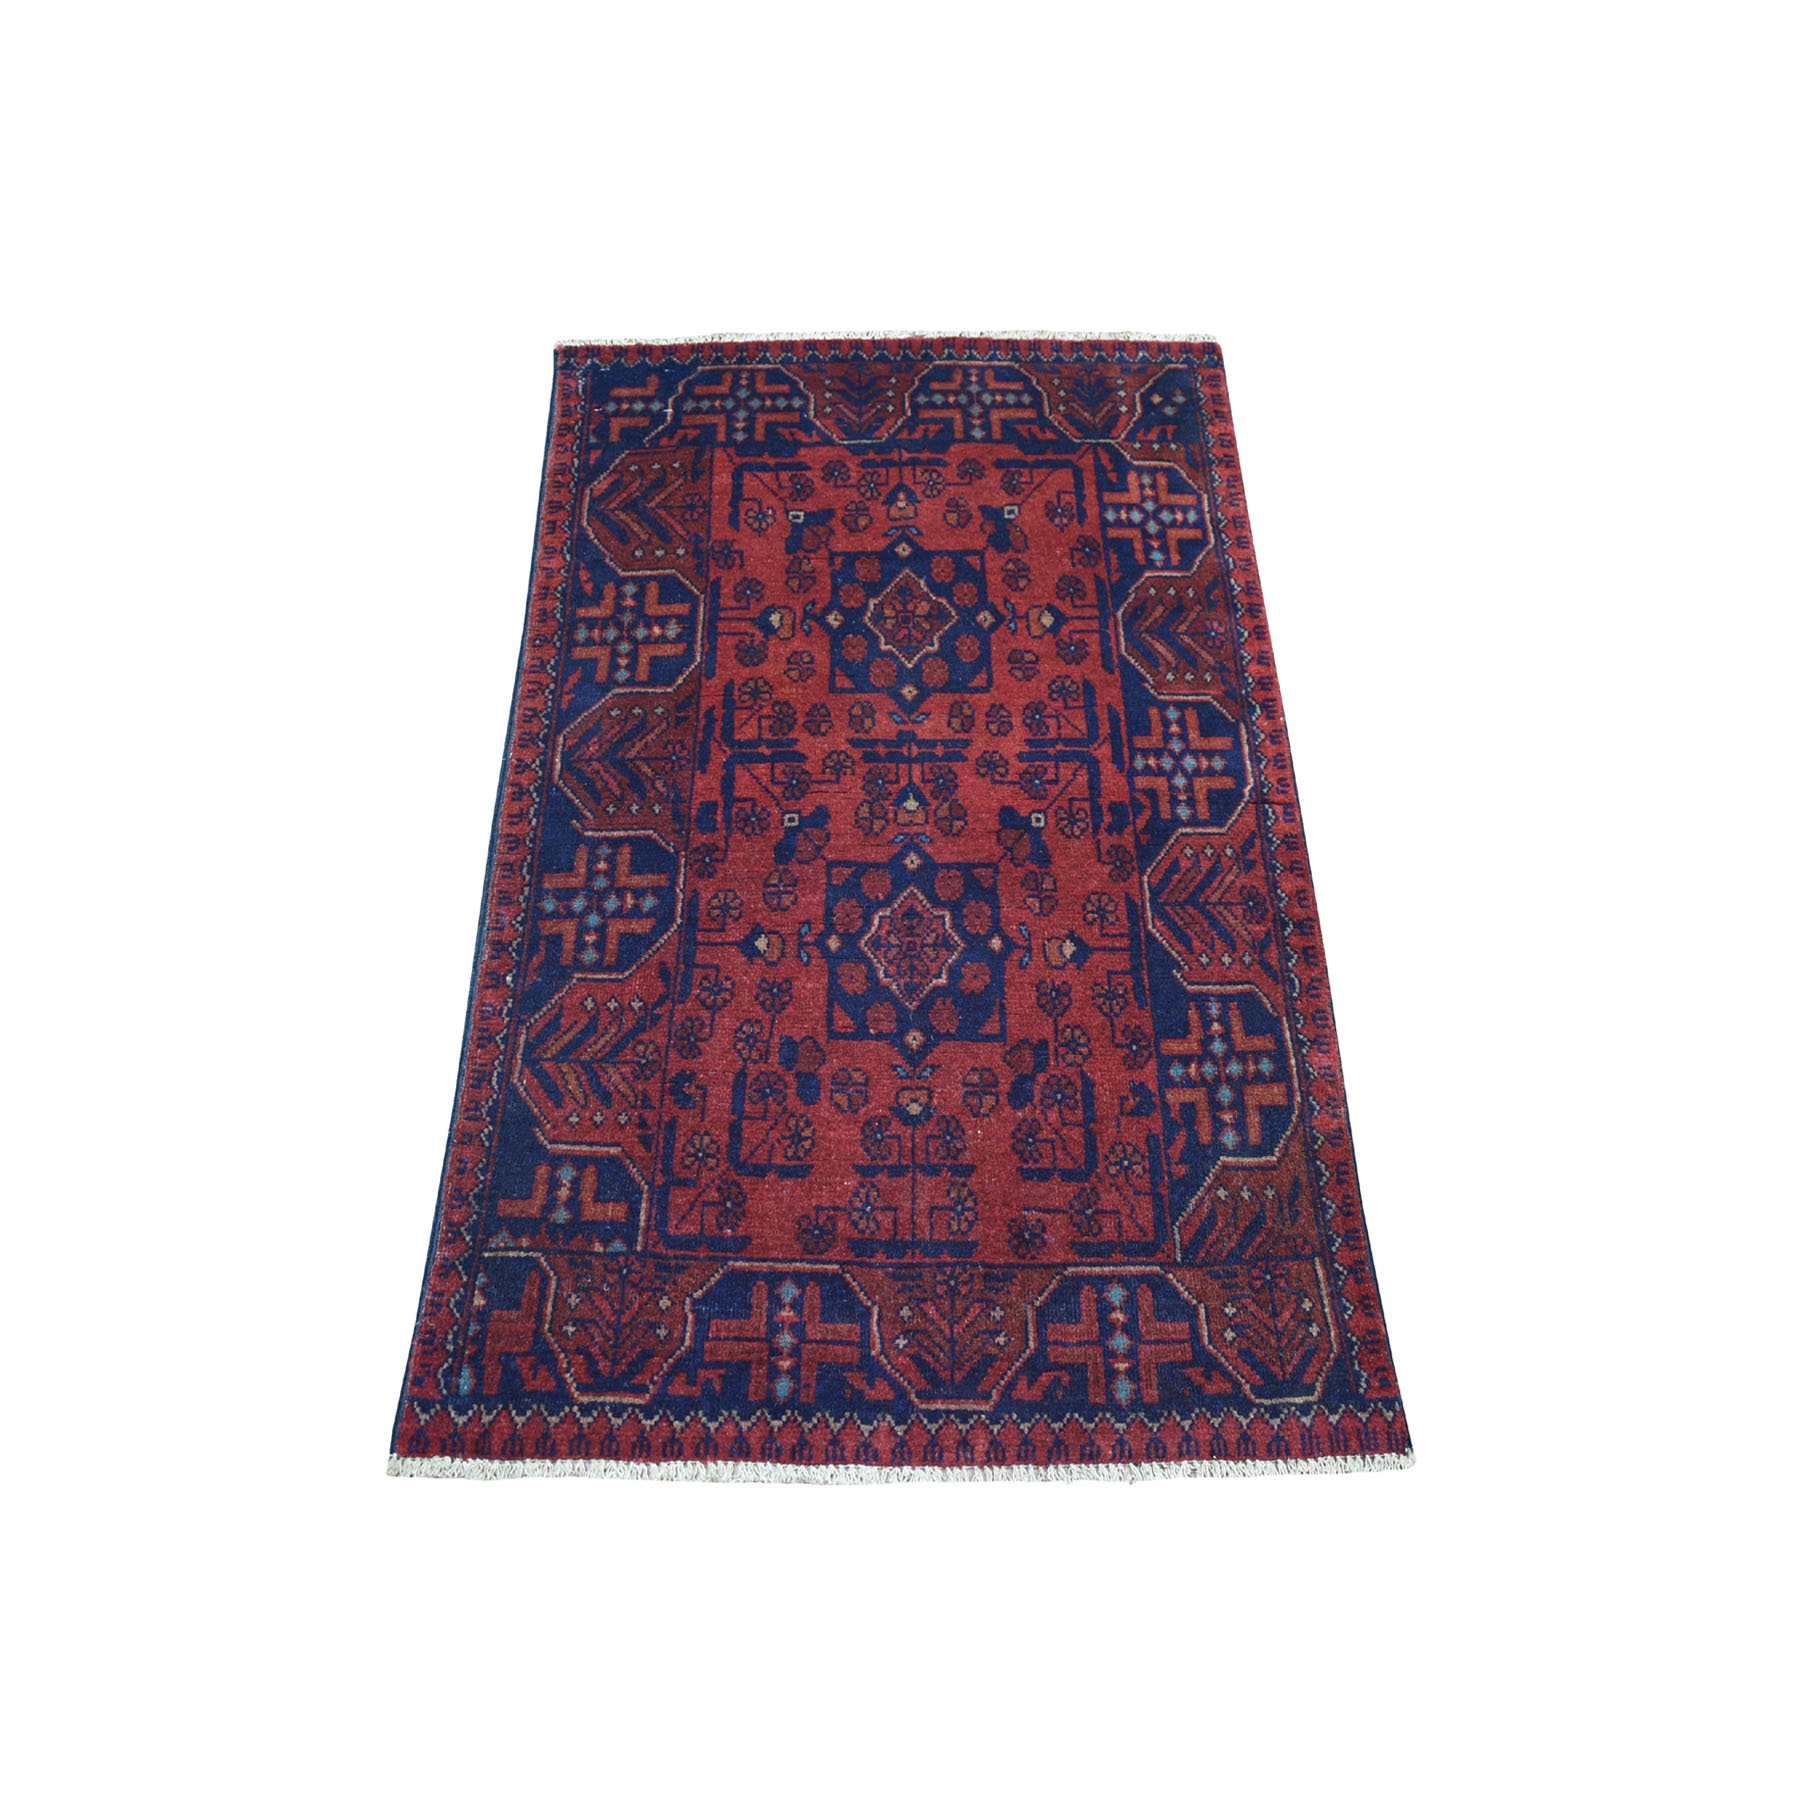 "2'5""X4' Deep And Saturated Red Geometric Design Afghan Andkhoy Pure Wool Hand-Knotted Oriental Rug moaec90b"